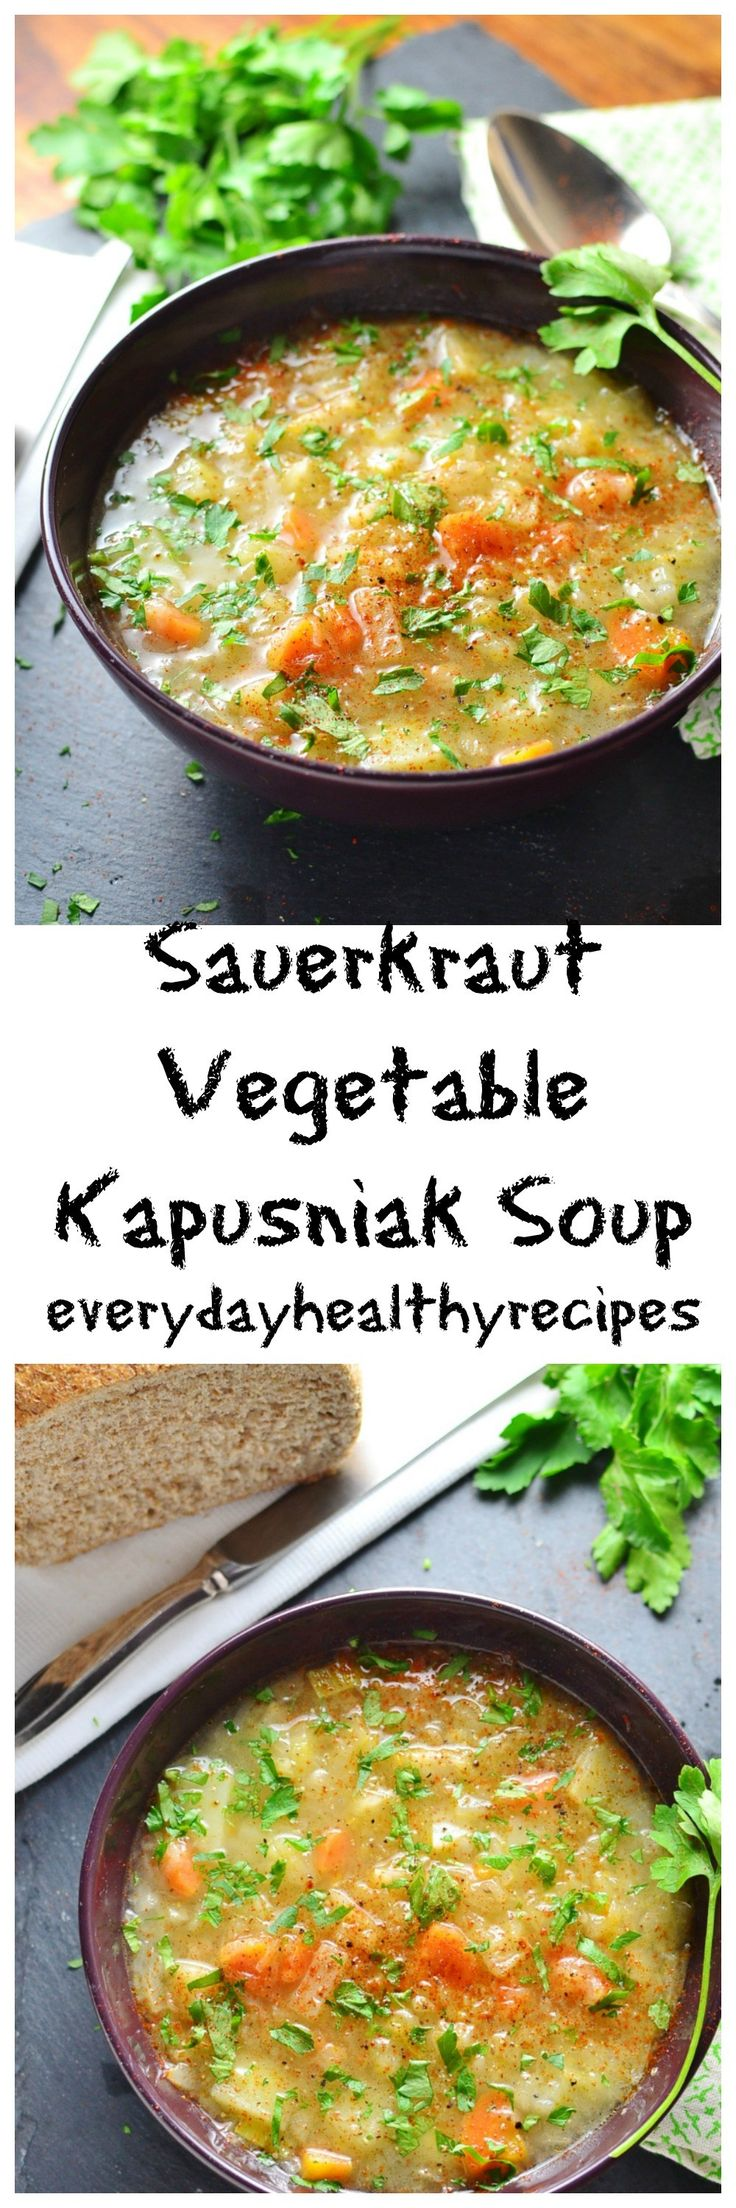 Sauerkraut Vegetable Kapusniak Soup...nice recipe!